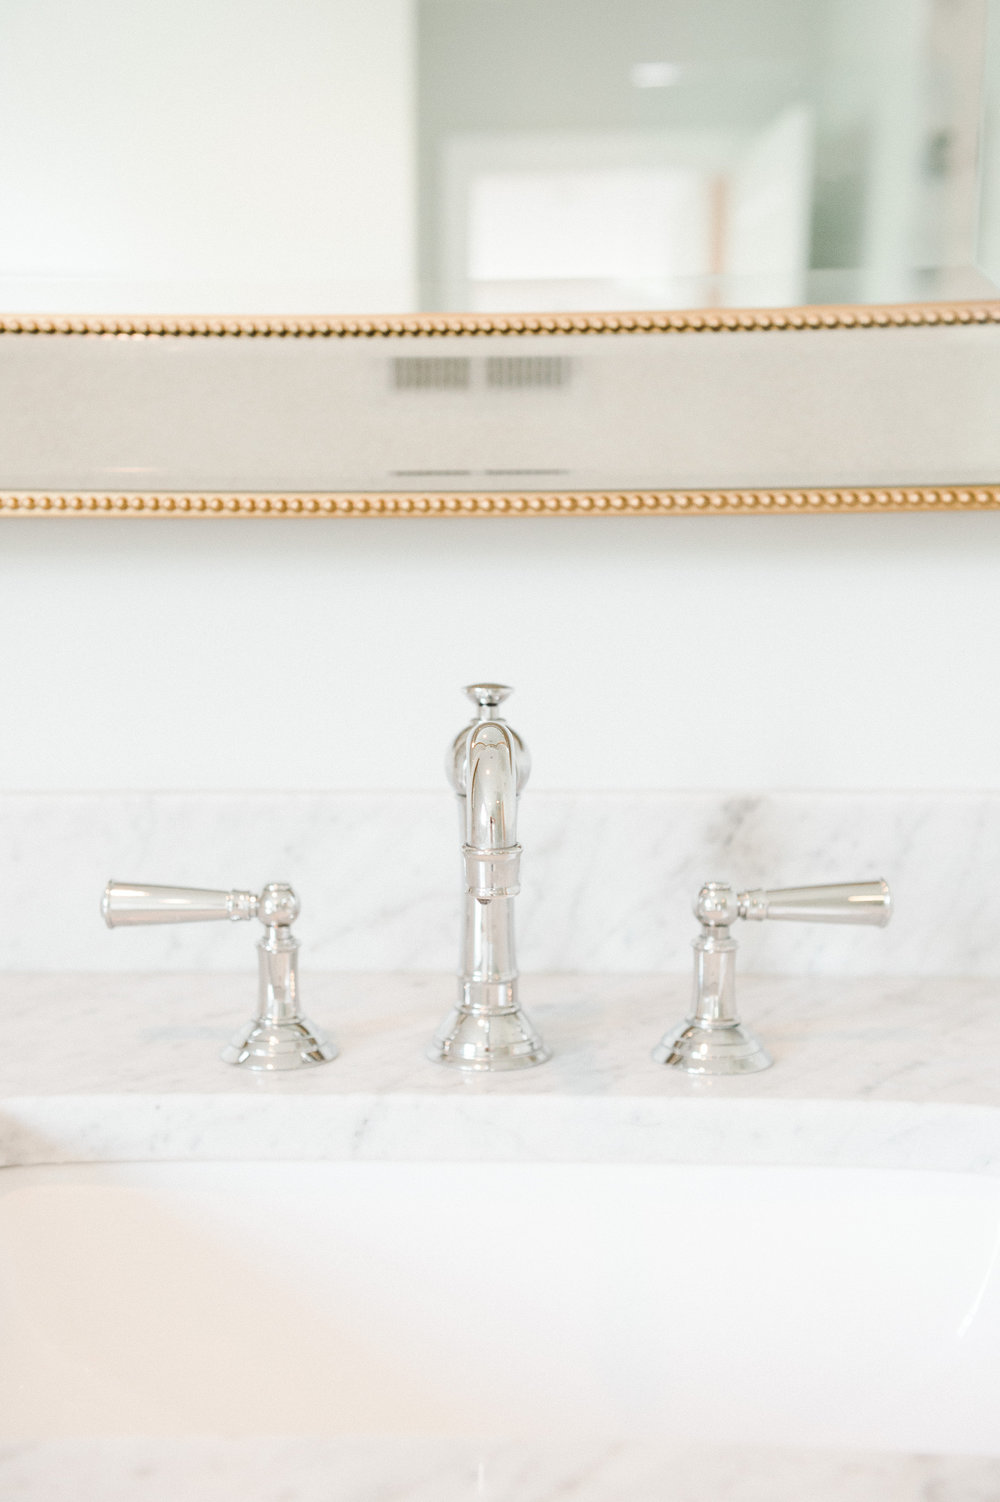 Silver faucet sink in bathroom